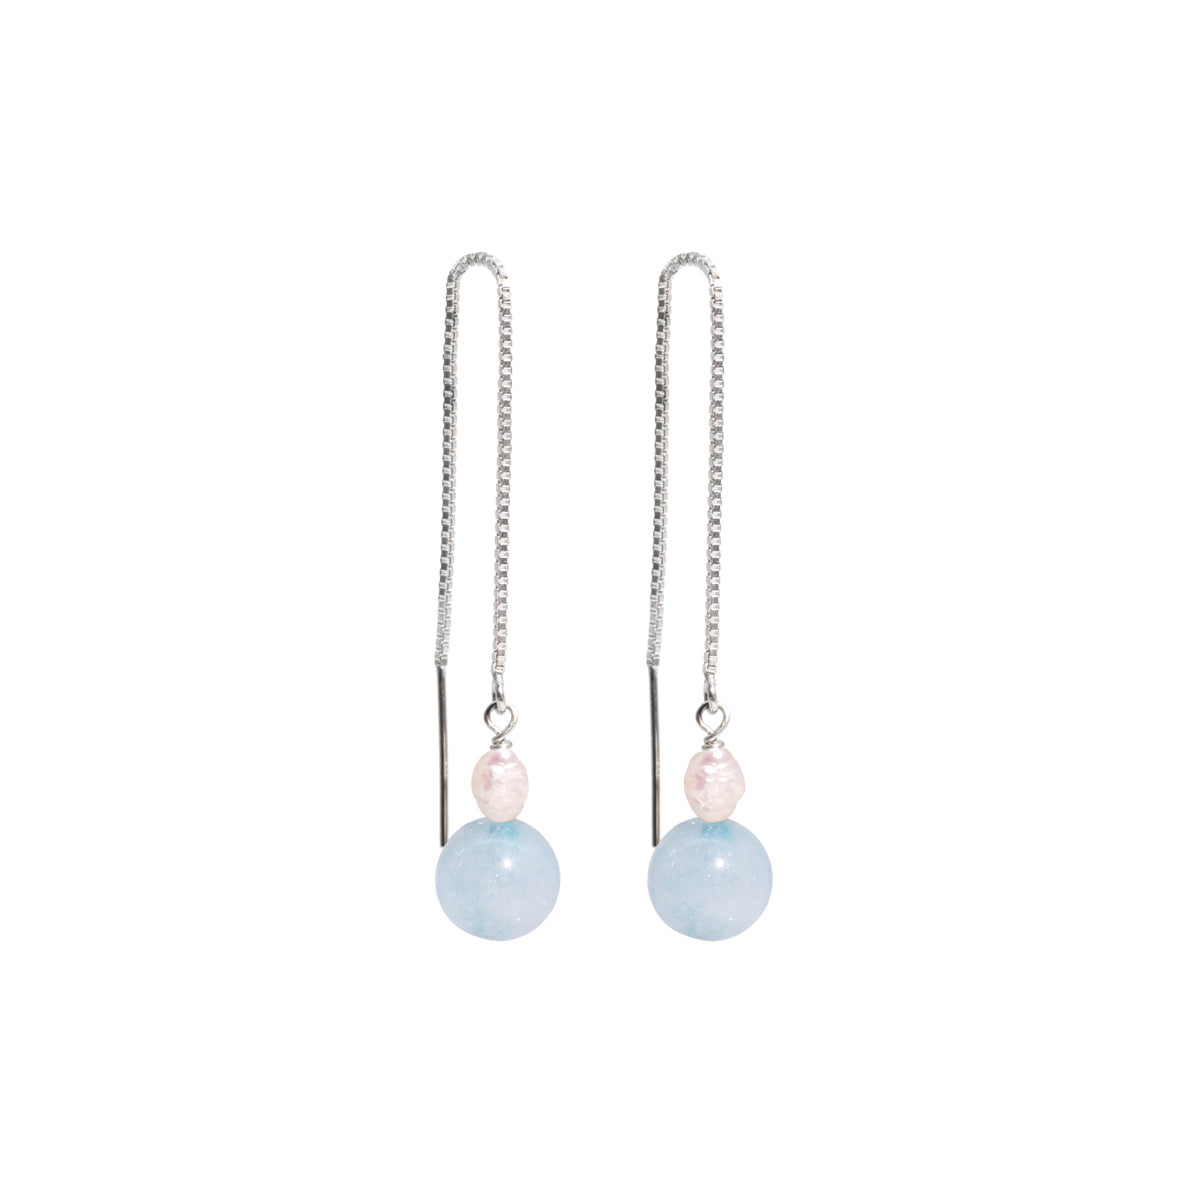 The Silver Mini Blue Jelly Threader Earrings